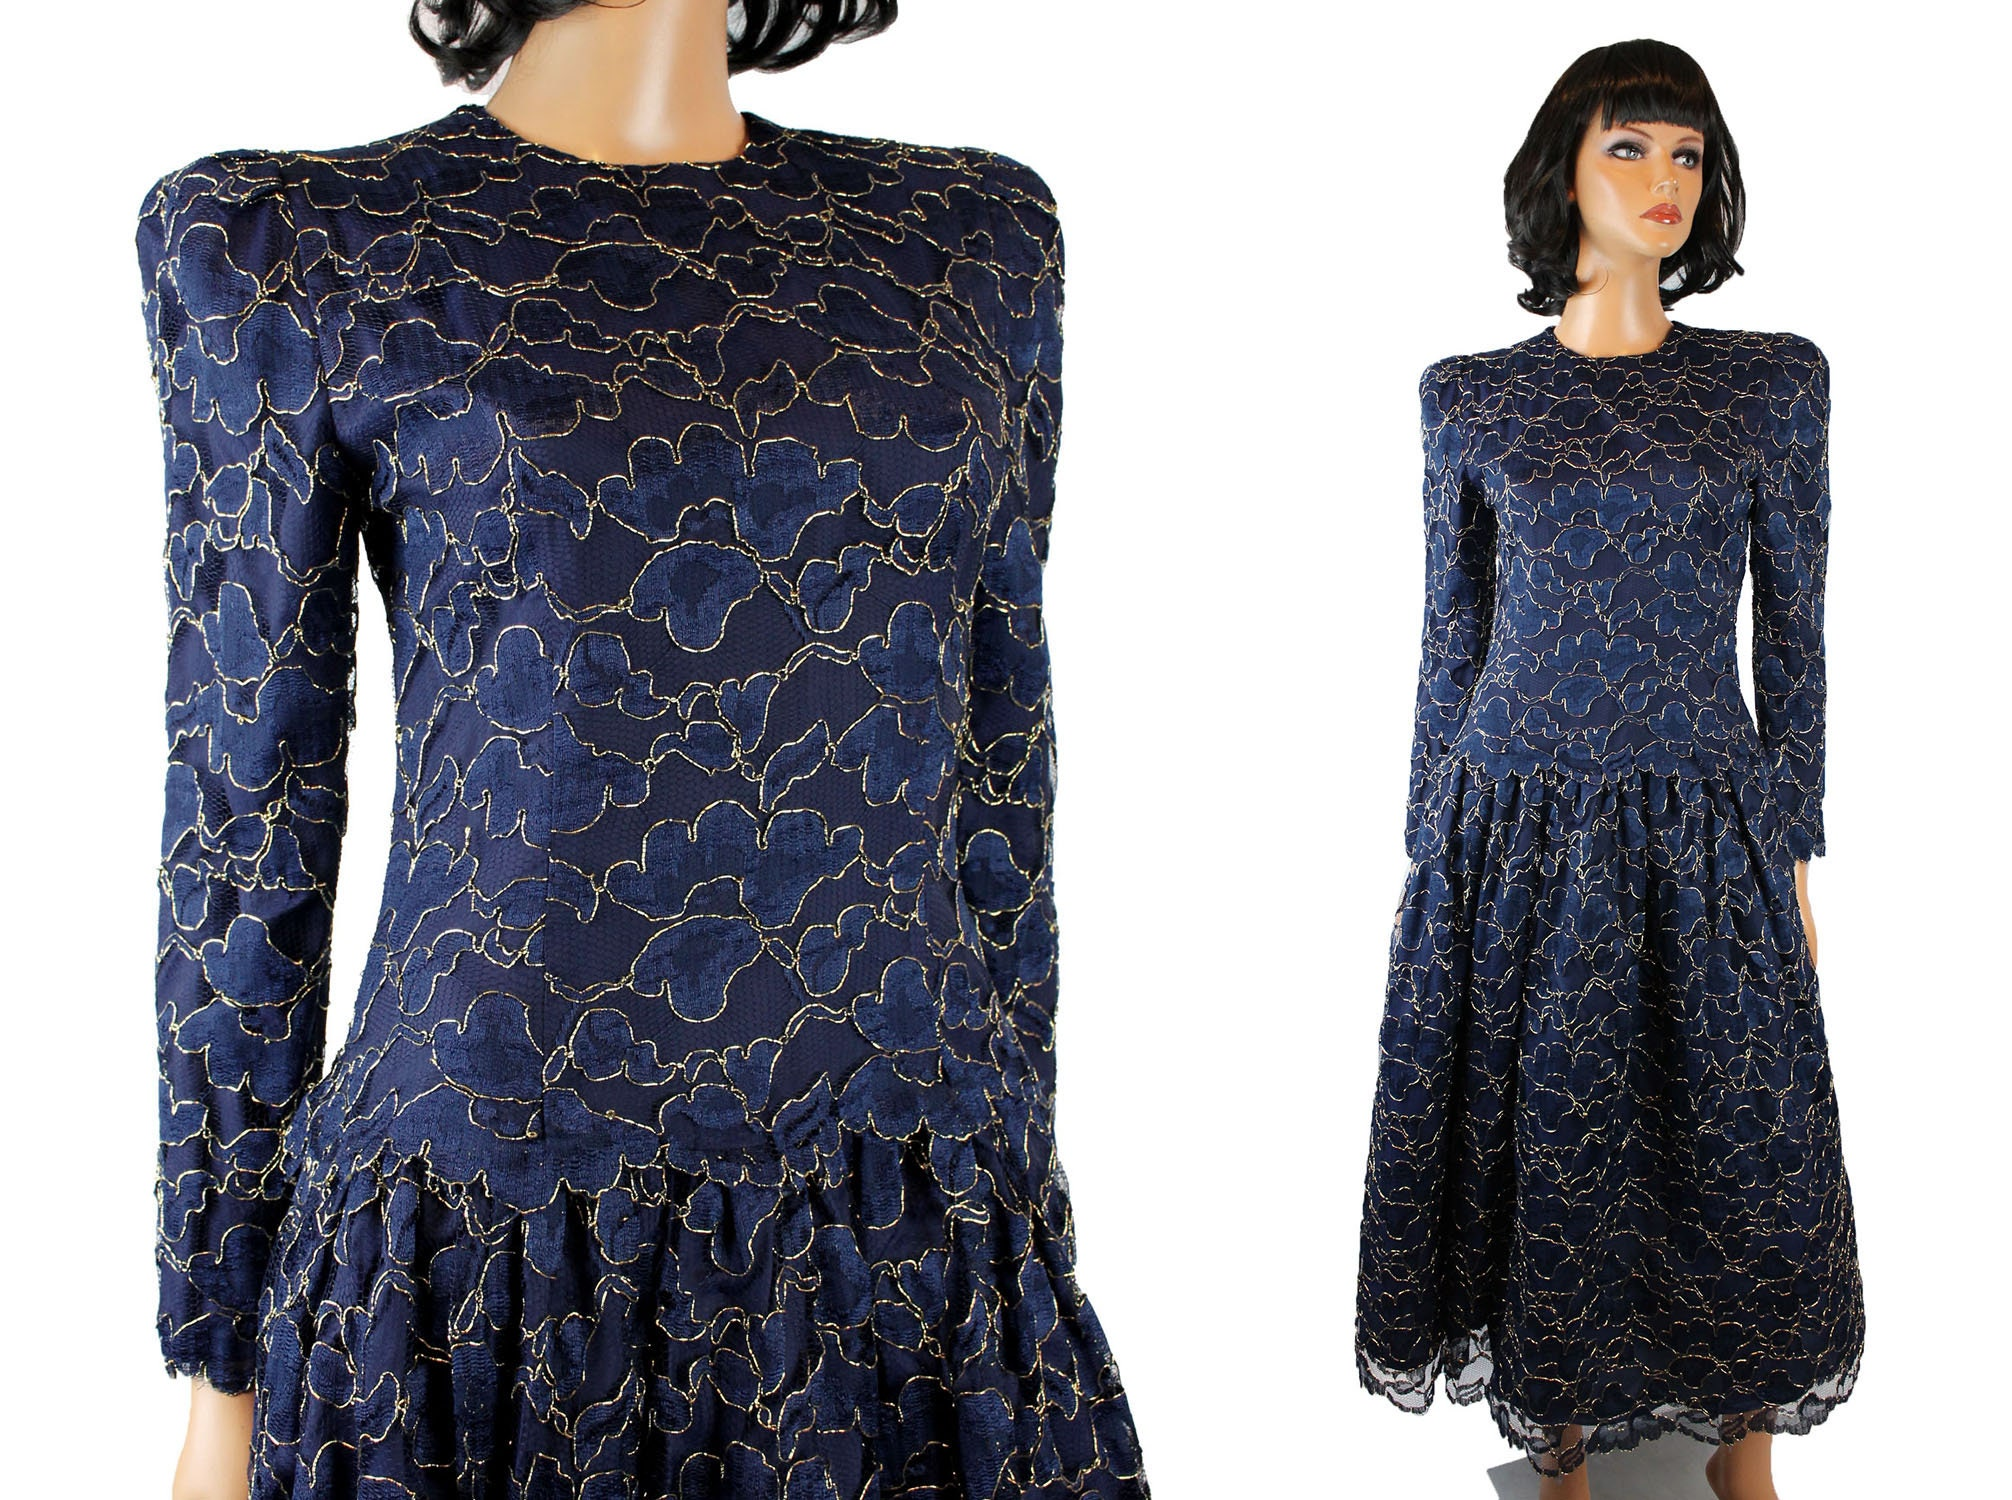 33a8854be5ecc 80s Prom Dress Sz S Vintage Talbots Dark Blue Gold Lace Cocktail Evening  Gown Free US Shipping